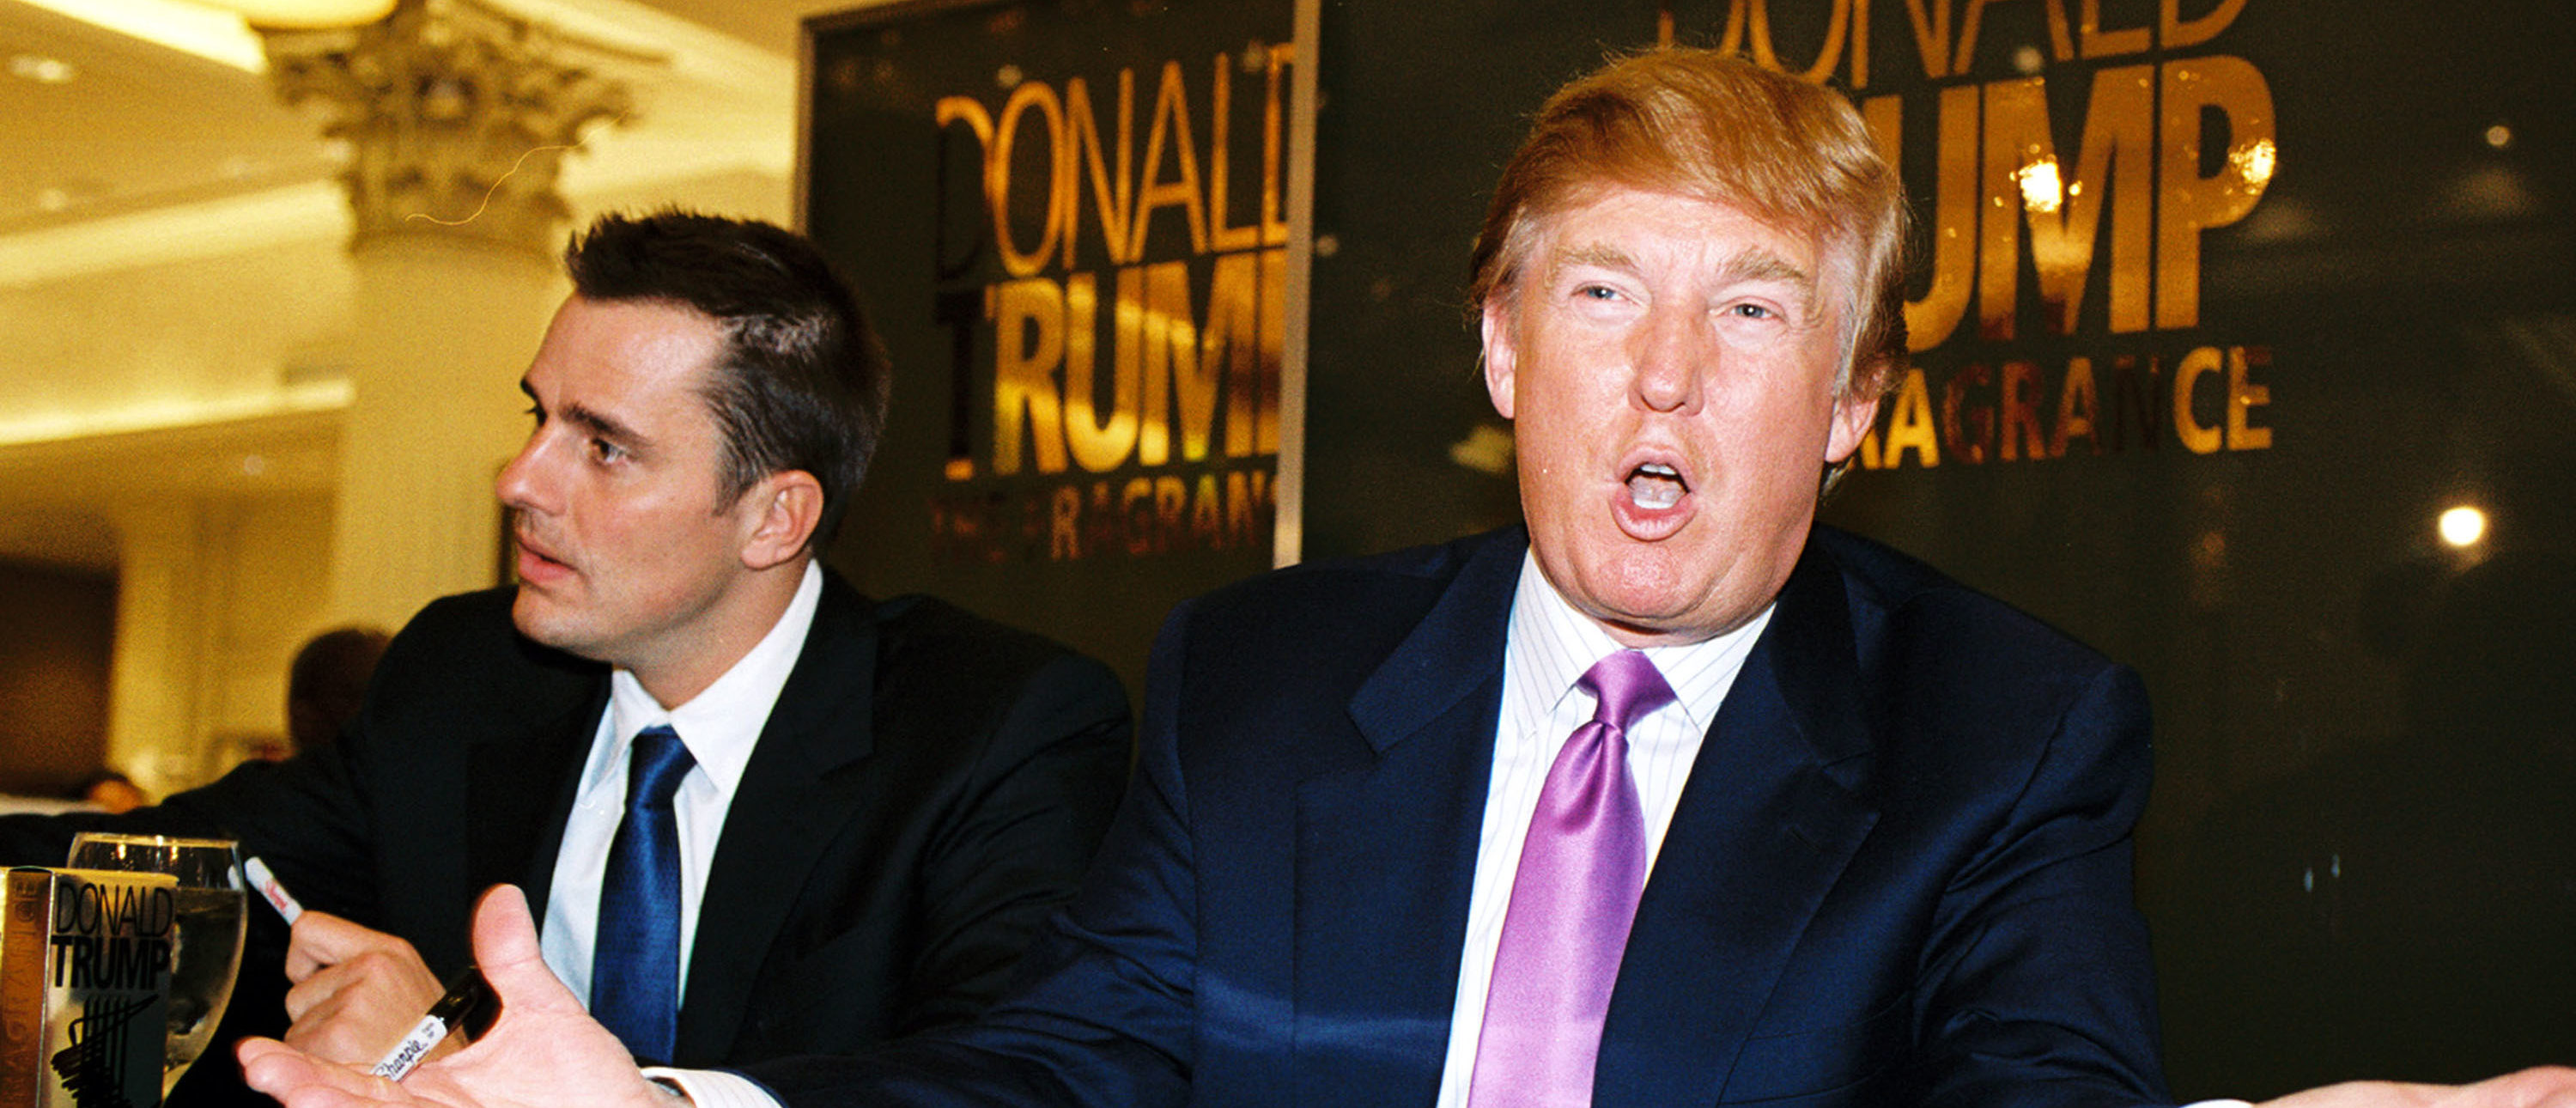 """CHICAGO - DECEMBER 7: Real estate mogul Donald Trump (R) and """"The Apprentice"""" winner Bill Rancic (L) make a promotional appearance at Marshall Field's for Trump's new cologne, The Fragrance, December 7, 2004 in Chicago, Illinois. (Photo by Scott Harrison/Getty Images)"""